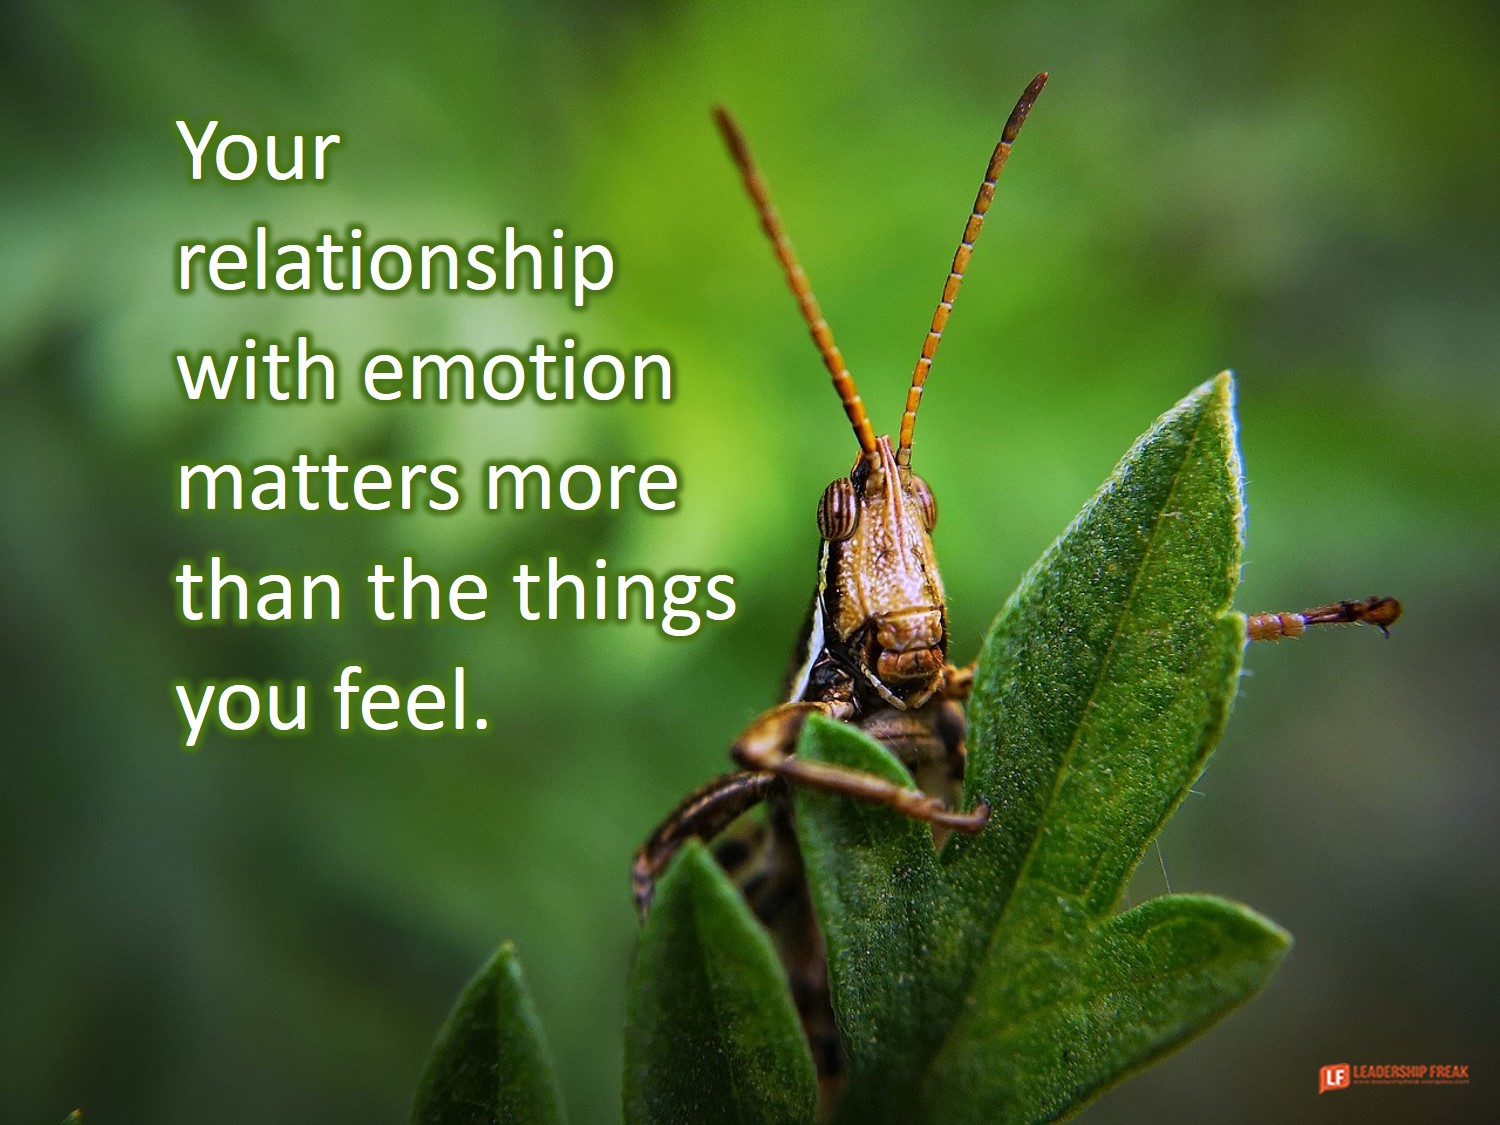 Emotion: What I Learned From Chasing Mom with a Plastic Bug